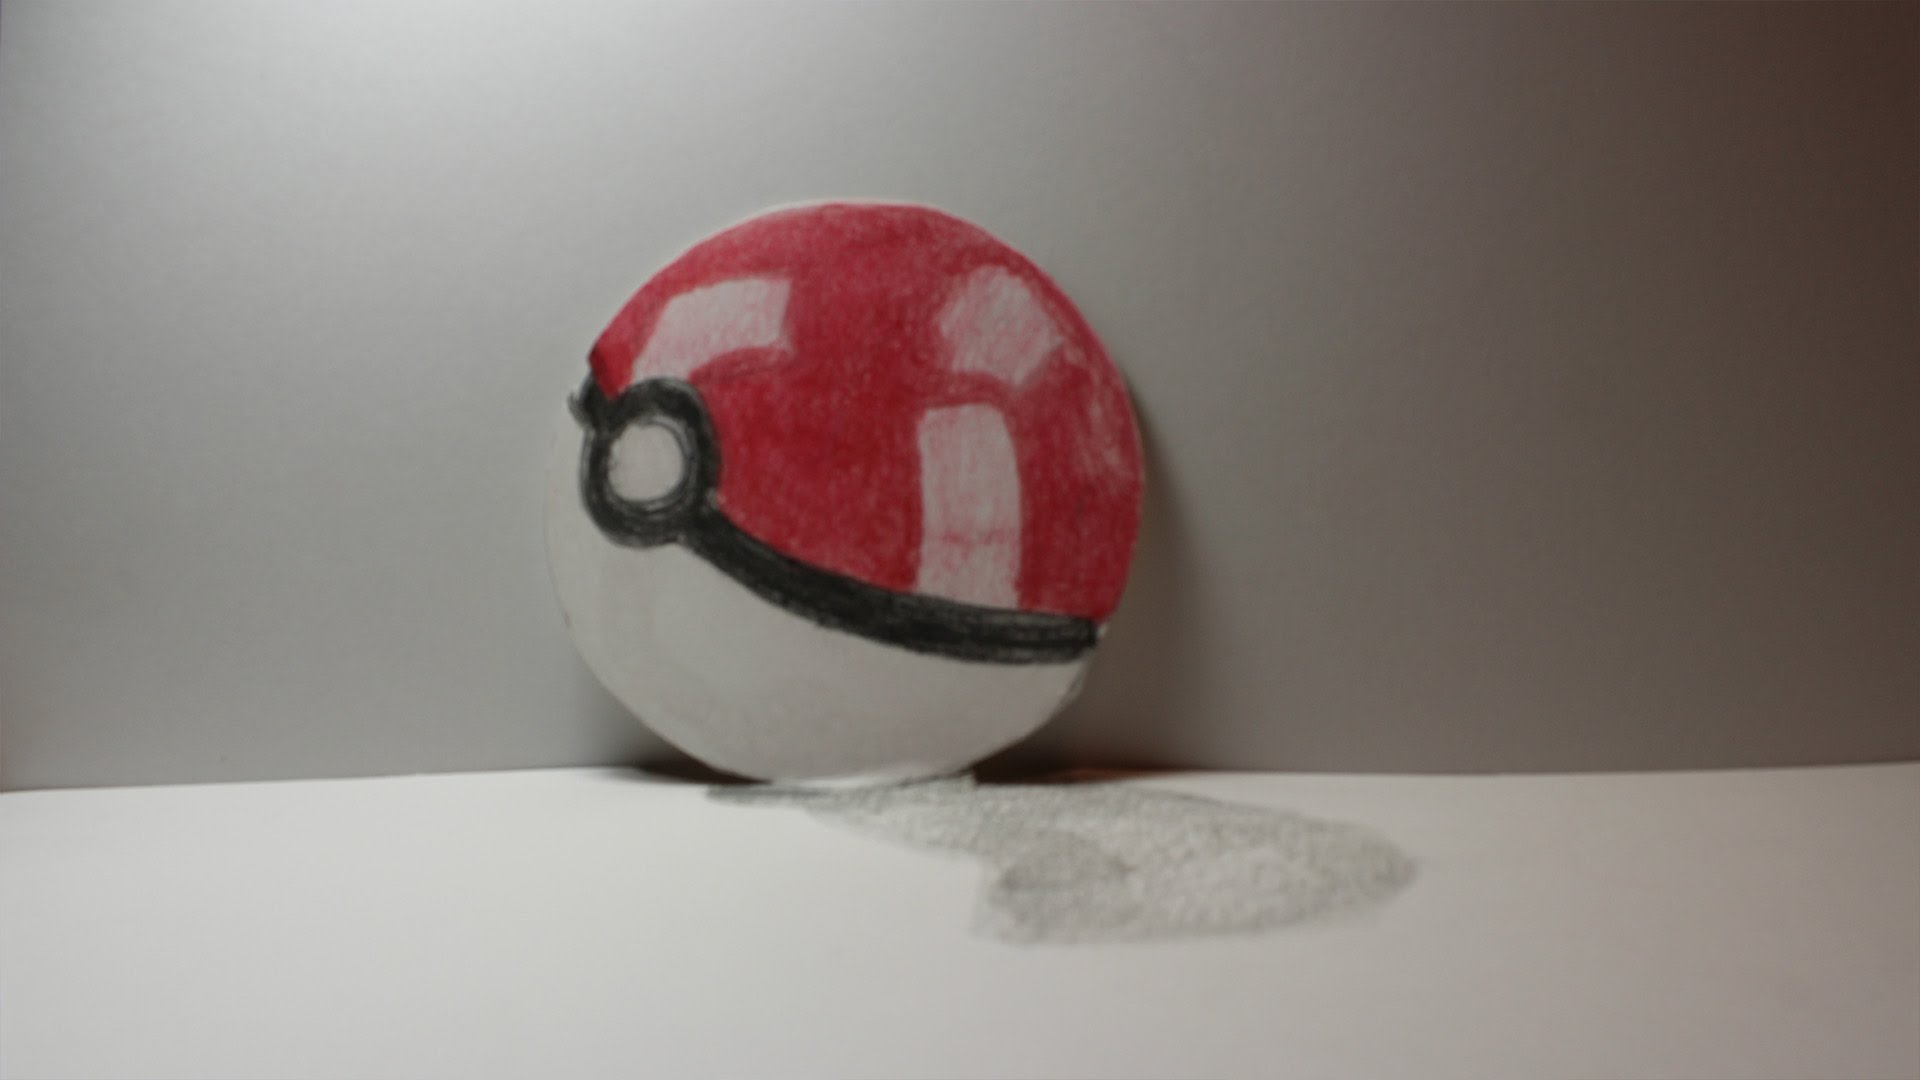 Drawn pokeball 3d drawing Ball!! a to How to